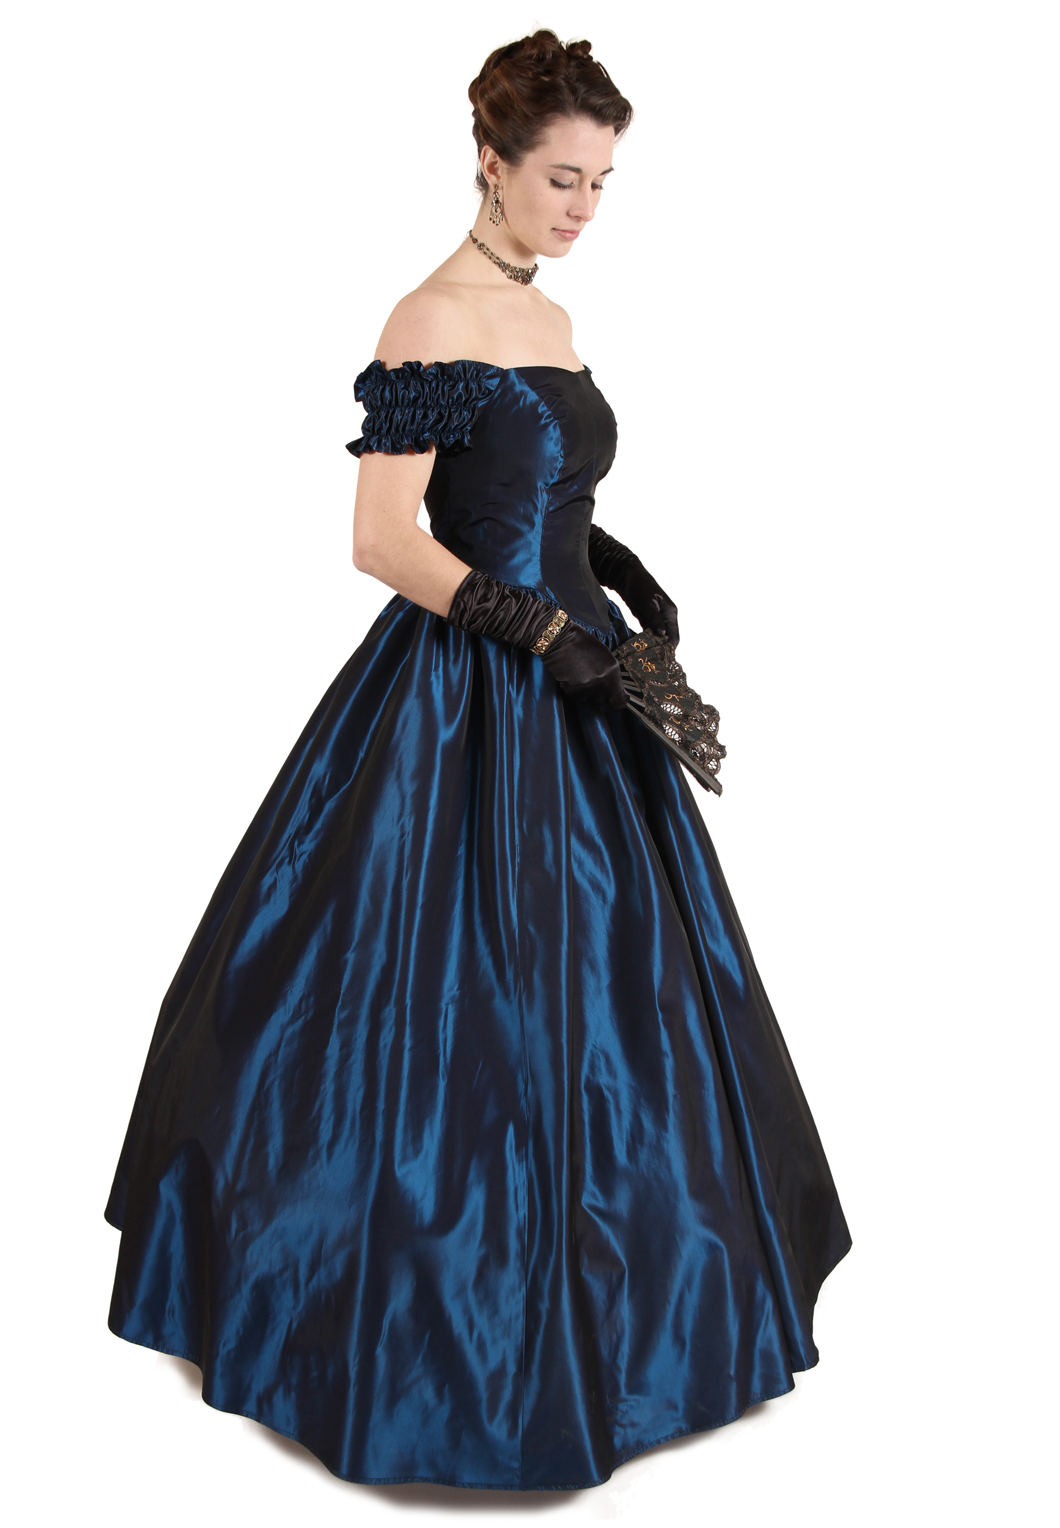 Chantelle Victorian Ball Gown | Recollections